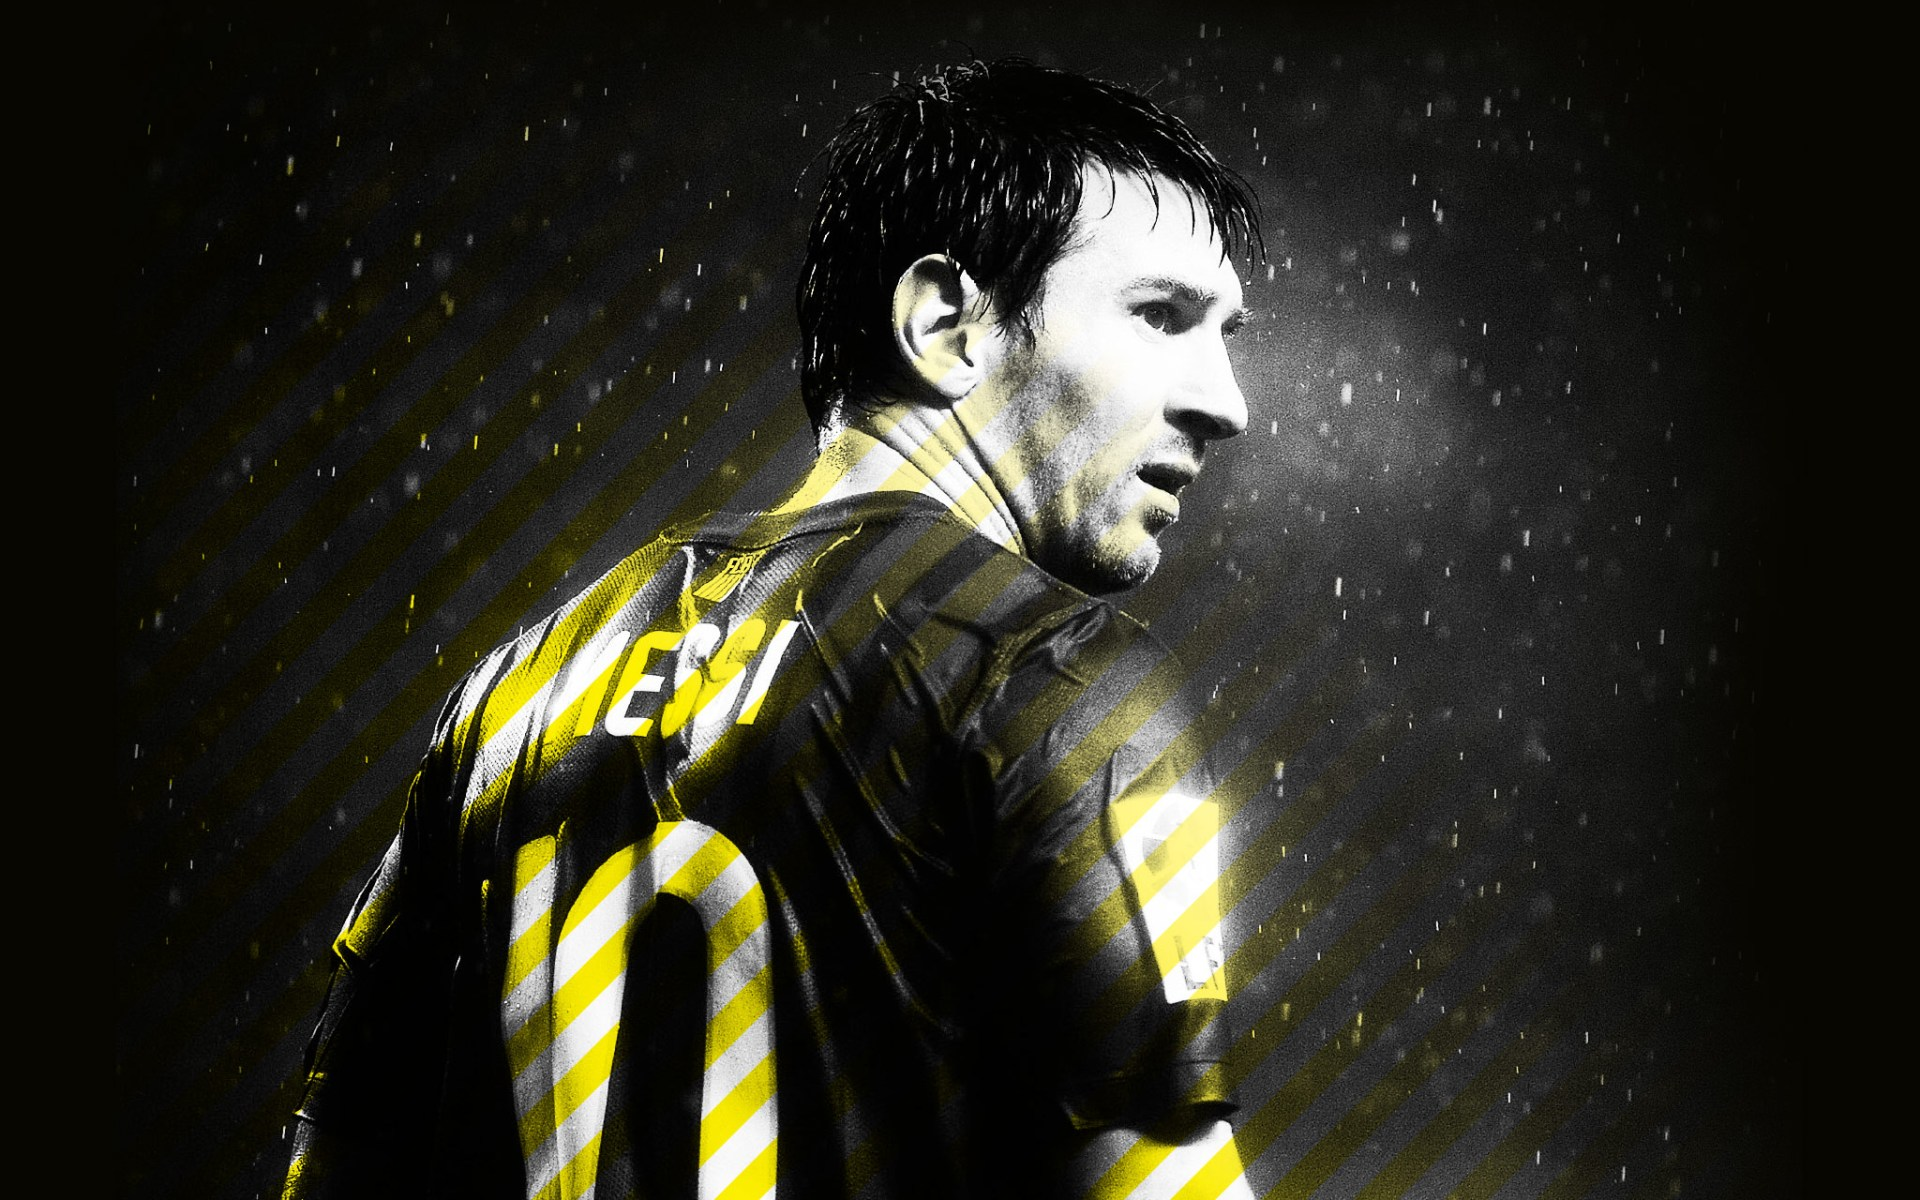 Lionel Messi 2014 - Wallpaper, High Definition, High Quality ...